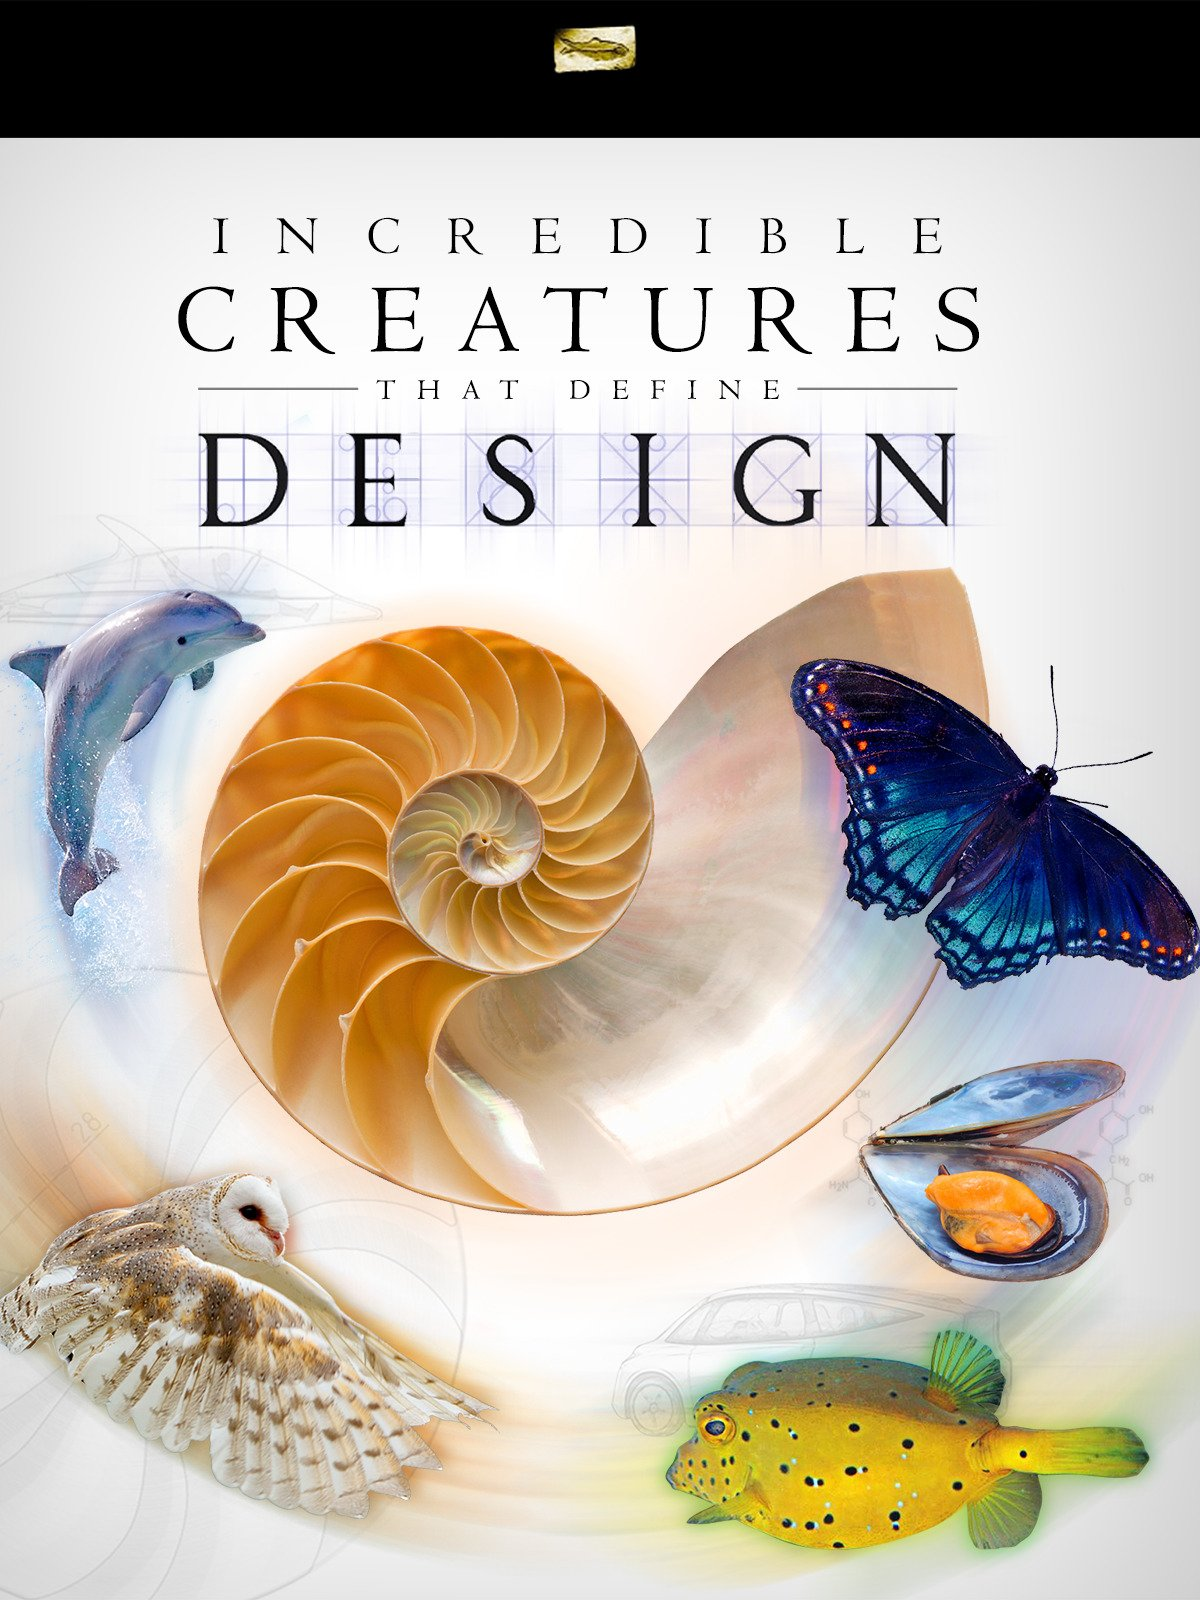 Incredible Creatures That Define Design on Amazon Prime Video UK